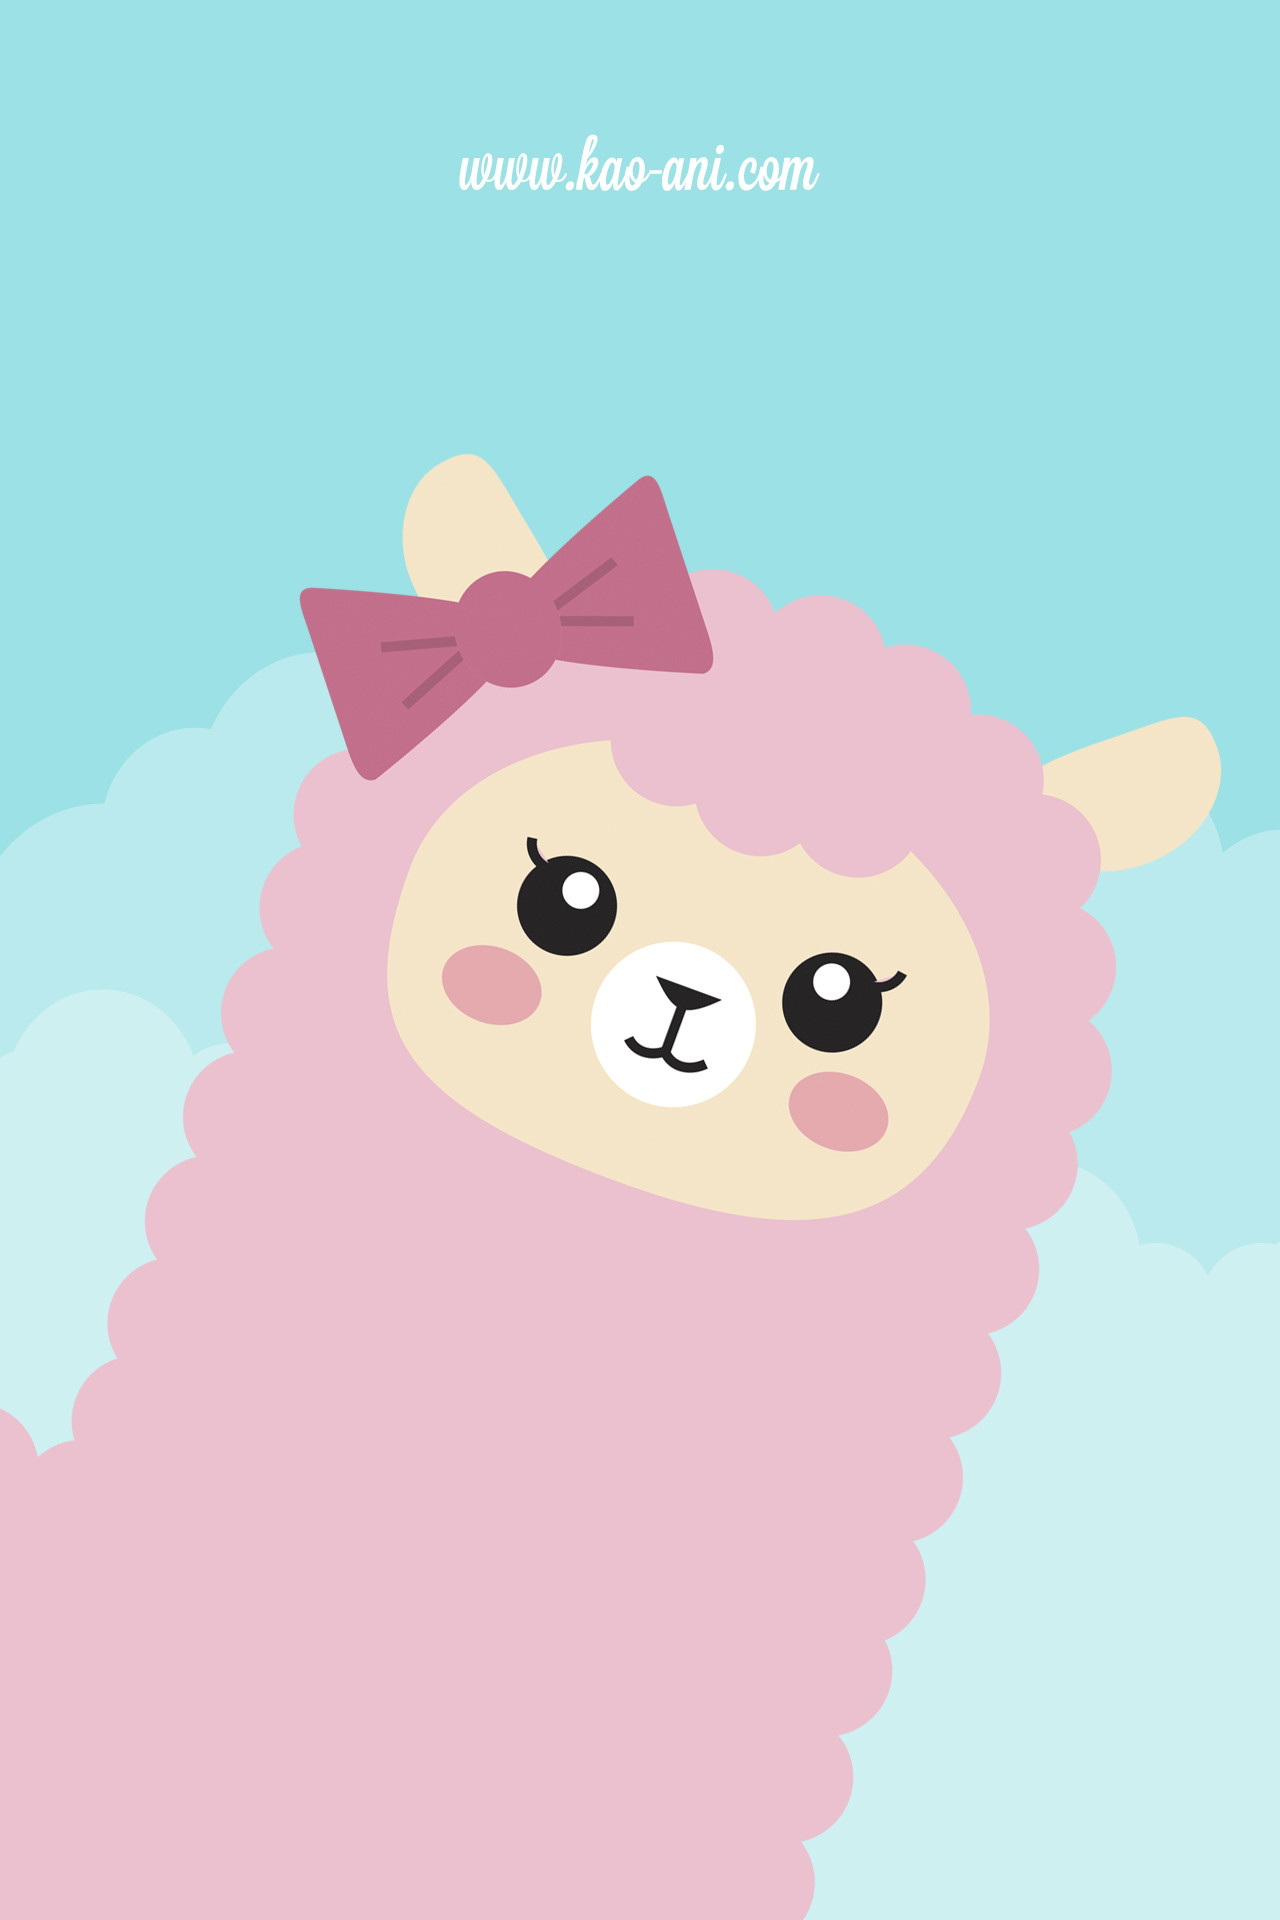 1280x1920 Iphone Backgrounds Tumblr Cute Alpaca iphone wallpaper